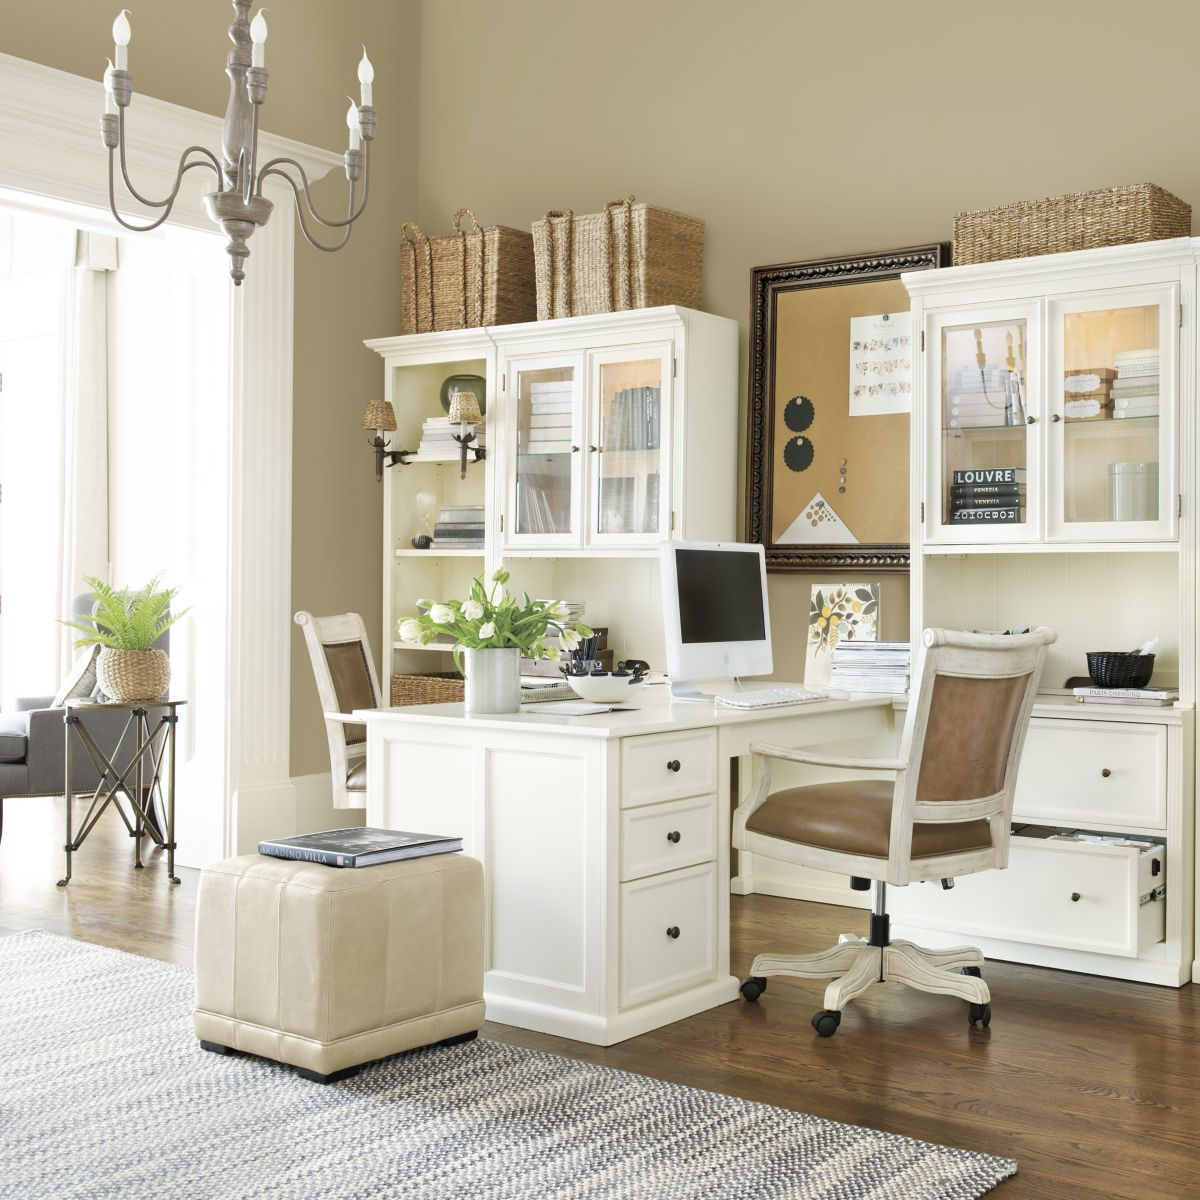 Tuscan Return Office Group - Large | Small spaces, Bump and Desks